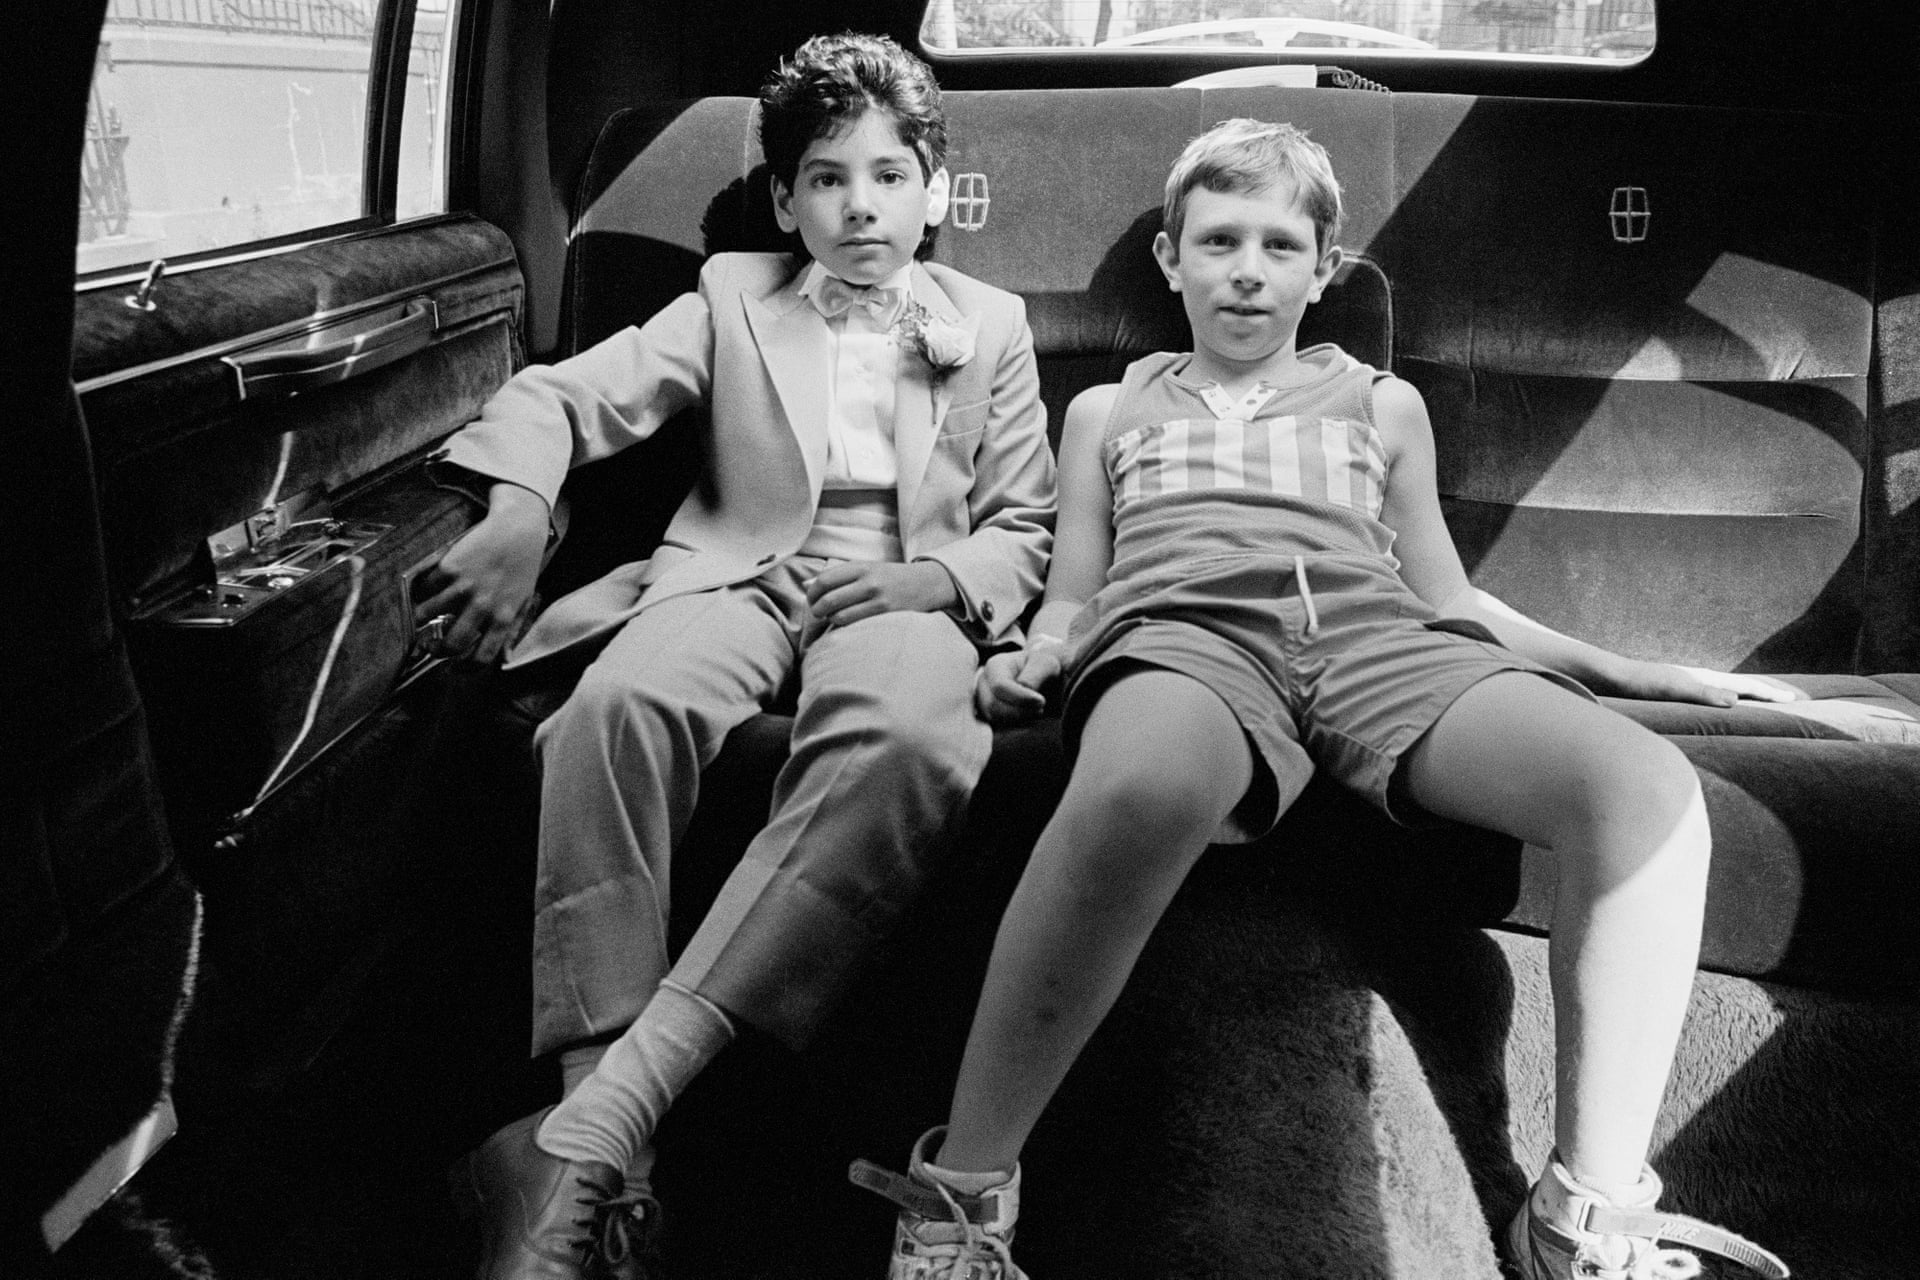 4000 - Photographer Kathy Shorr on driving a limo in 80s Brooklyn